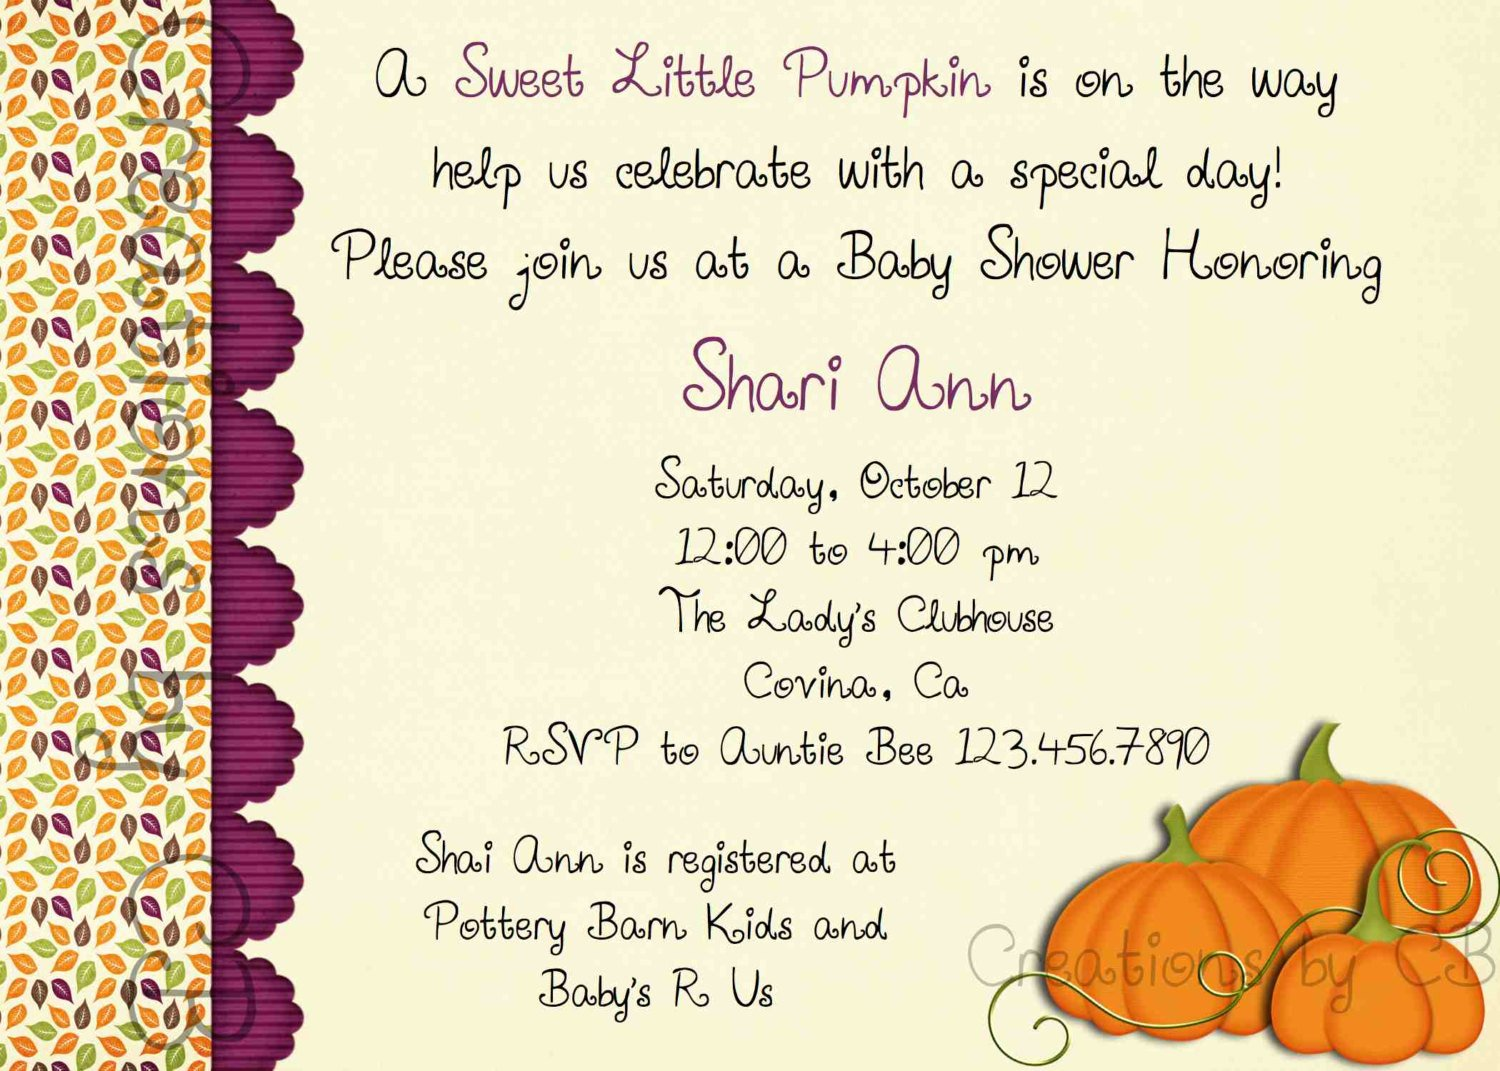 Potluck Party Invitation Wording Lovely Wording for Thanksgiving Invitation Dinner Rent